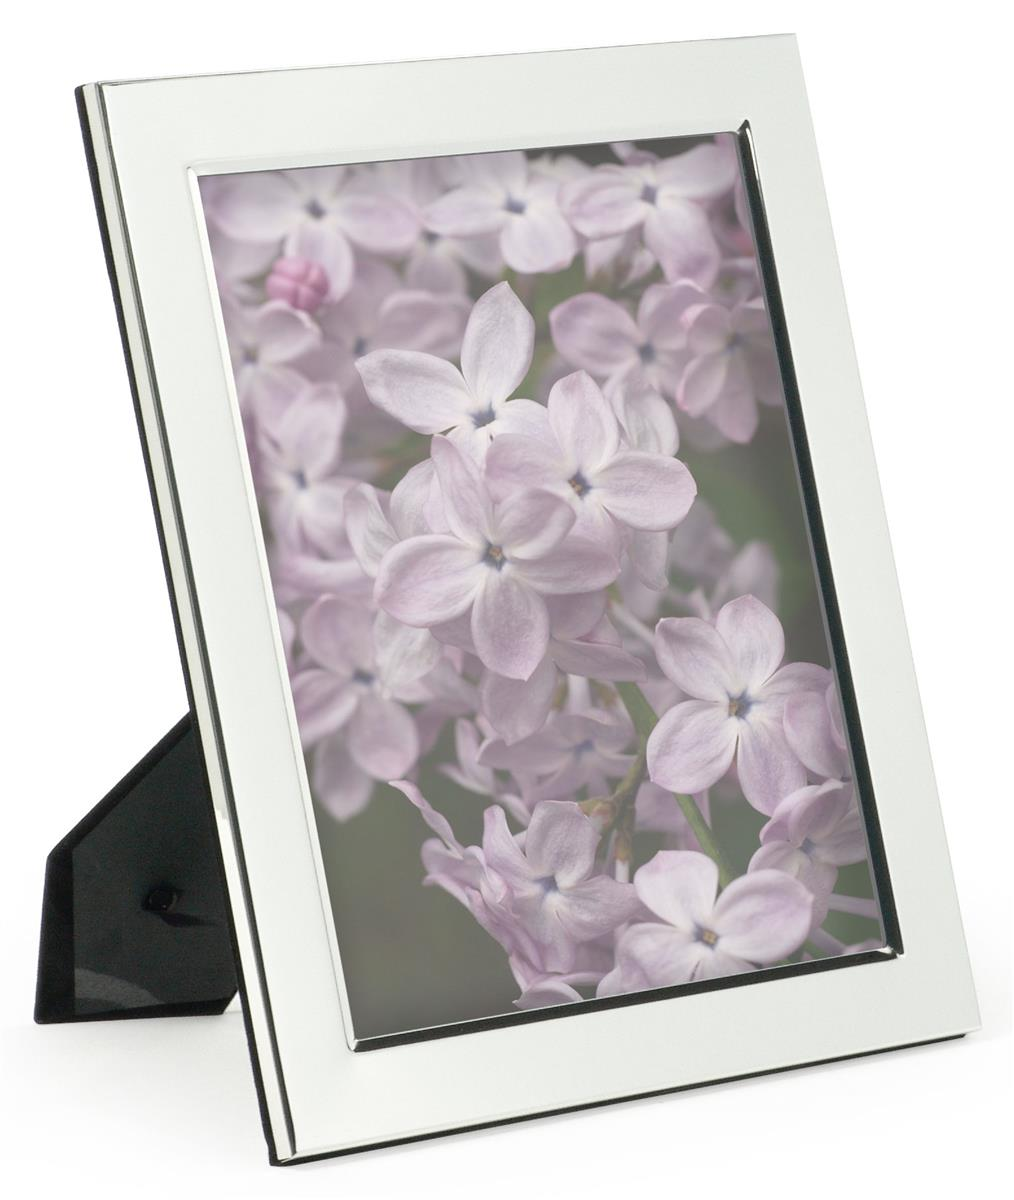 Silver Plated Picture Frames Aluminum Photo Holders